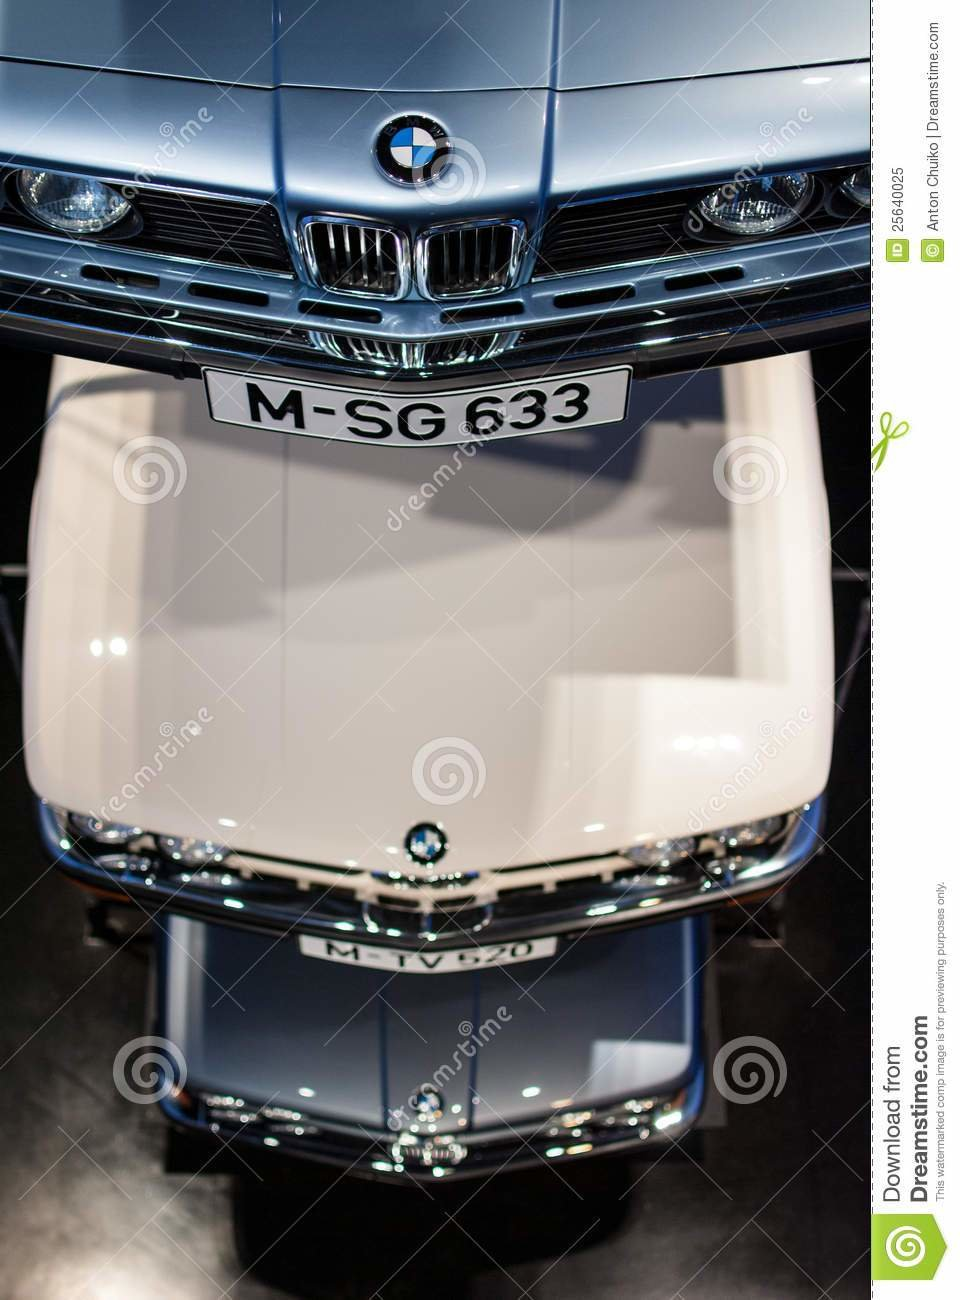 Latest Bmw Car History Stand Editorial Image Image Of Blue Free Download